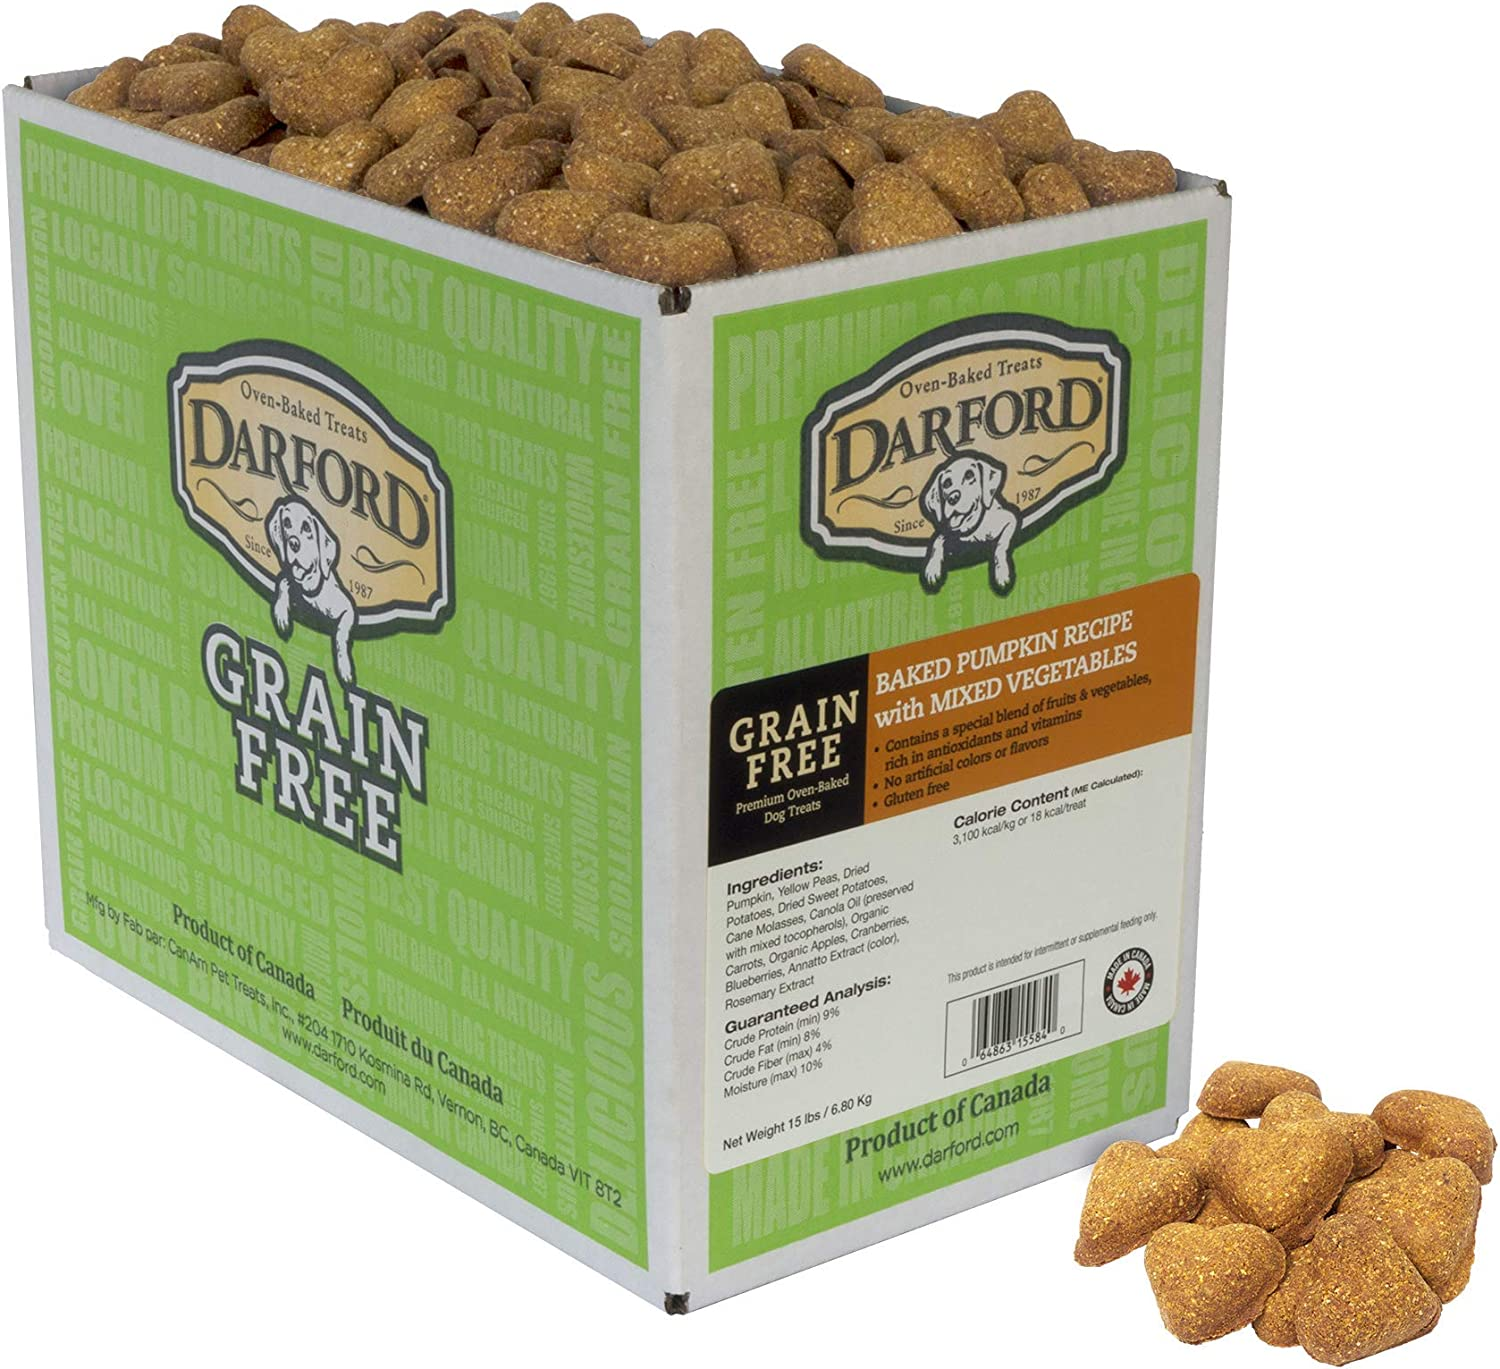 EcoKind Pet Treats Prime Thick-Cut Cow Ear Dog Chews Sourced from All Hand-Inspected and USDA FDA Approved, Natural, Free Range Grass Fed Cattle with No Hormones, Additives or Chemicals